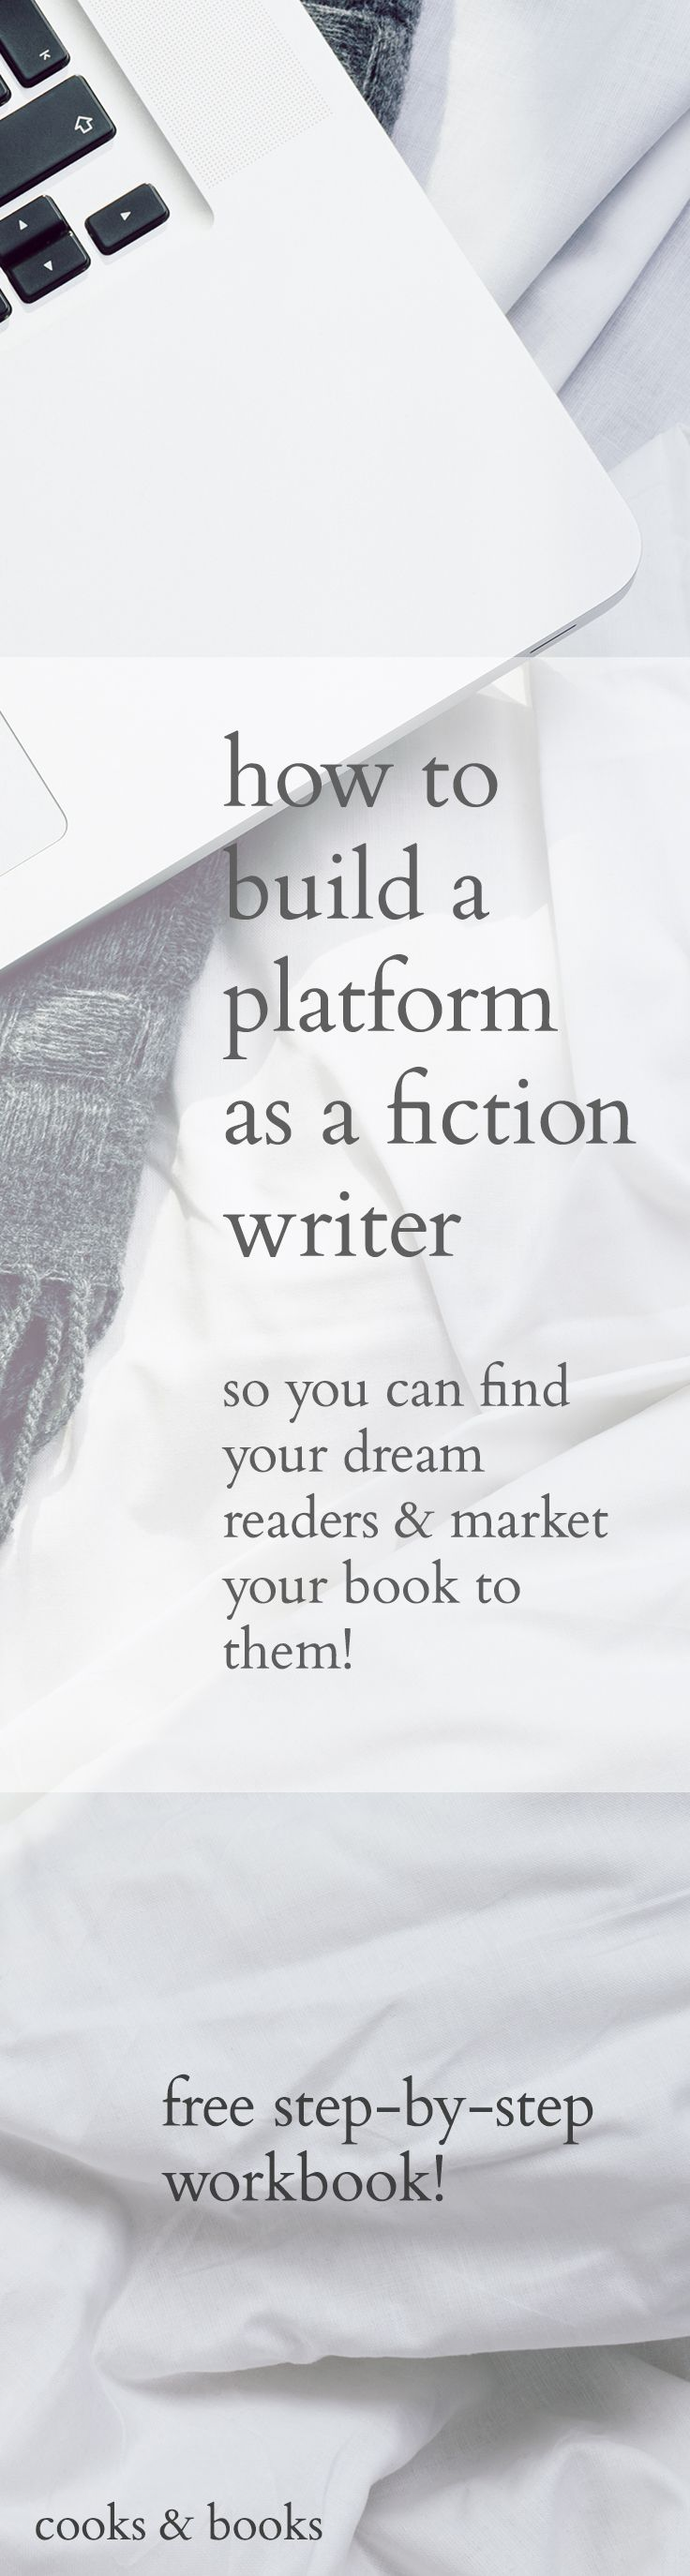 A free workbook to show you how to build a platform as a novelist so you can sell more books. It takes you step-by-step to show you what to write about, how to find readers, how to increase engagement, and how to build a fun and vibrant community! http://j.mp/208PF2Chttp://cooksplusbooks.com/2016/03/15/how-to-build-a-platform-as-a-fiction-writer-free-workbook/